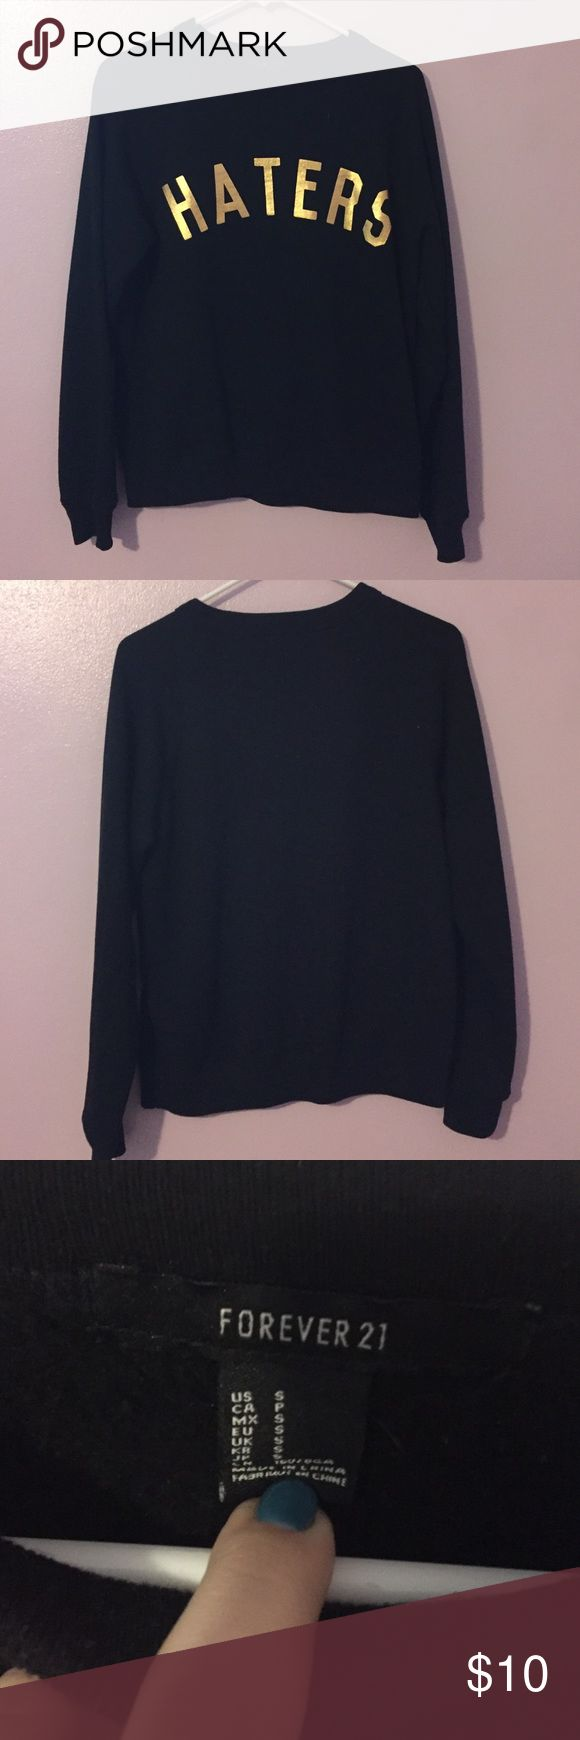 """Black haters sweatshirt Black sweatshirt with the word """"haters"""" in gold on it. Very comfy. Worn a few times. Perfect condition. Forever 21 Tops Sweatshirts & Hoodies"""